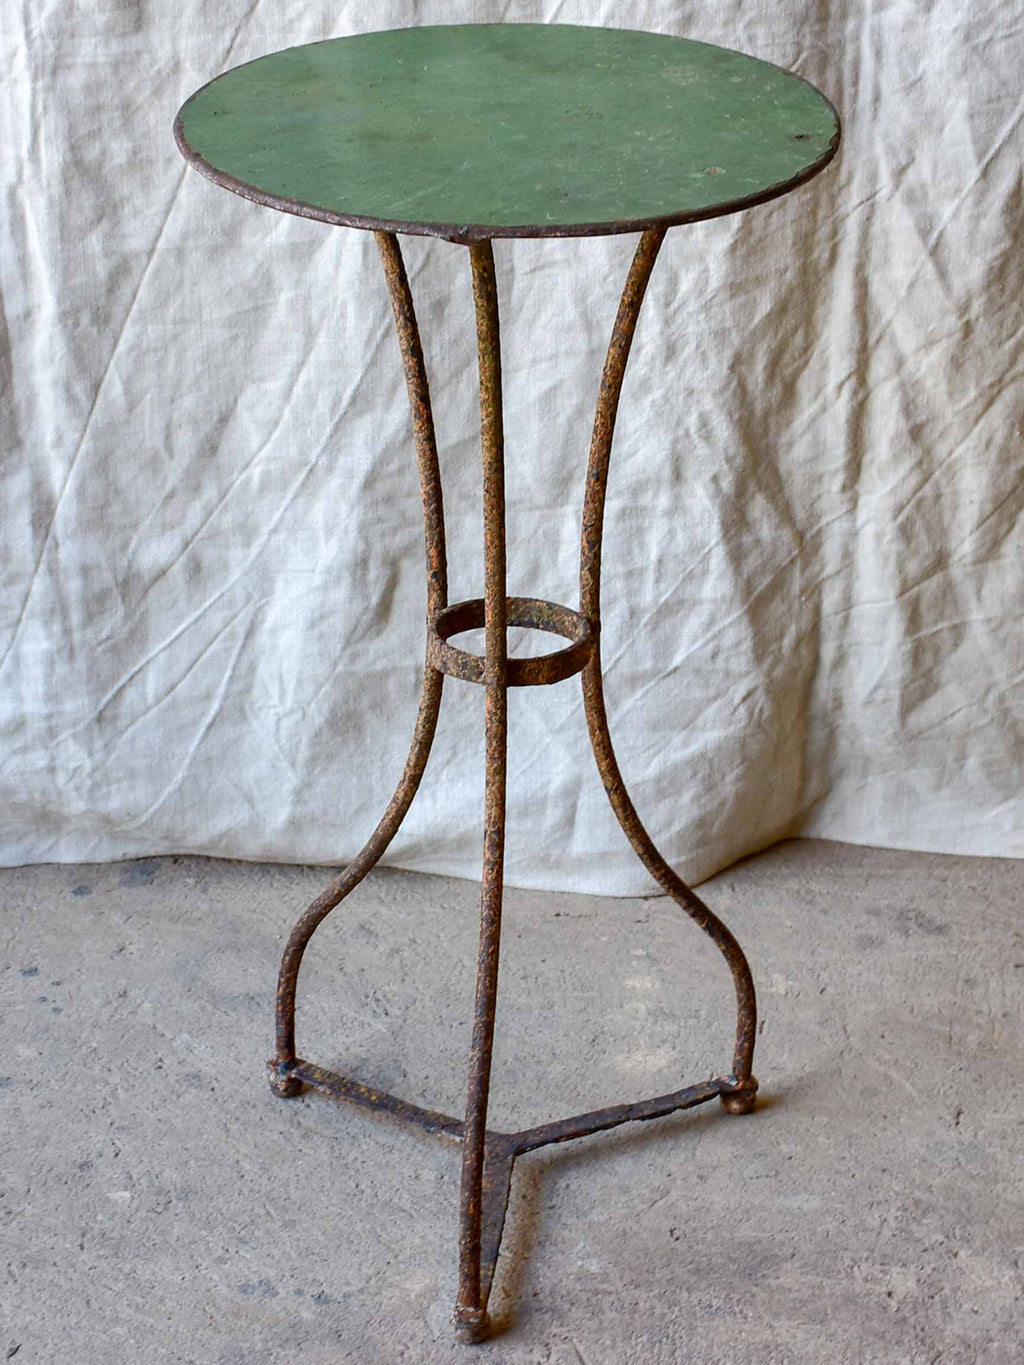 Small antique French garden table - round